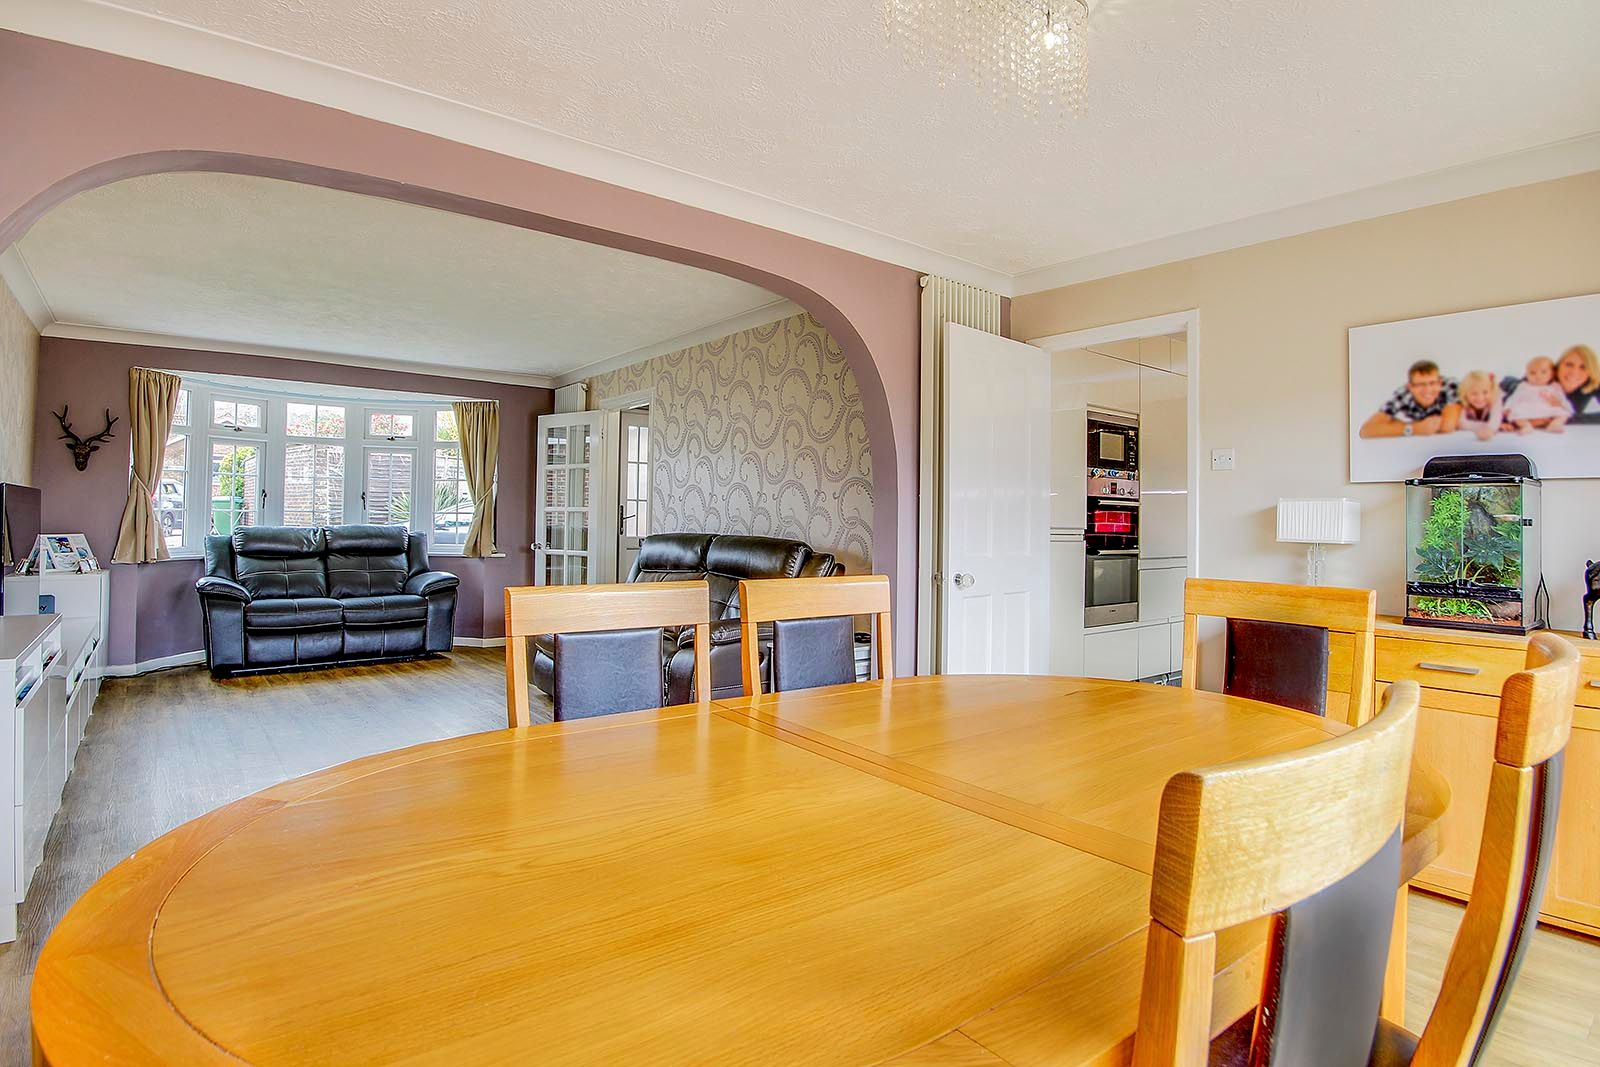 3 bed house for sale in Woodlands Close (COMP AUG 19) 4